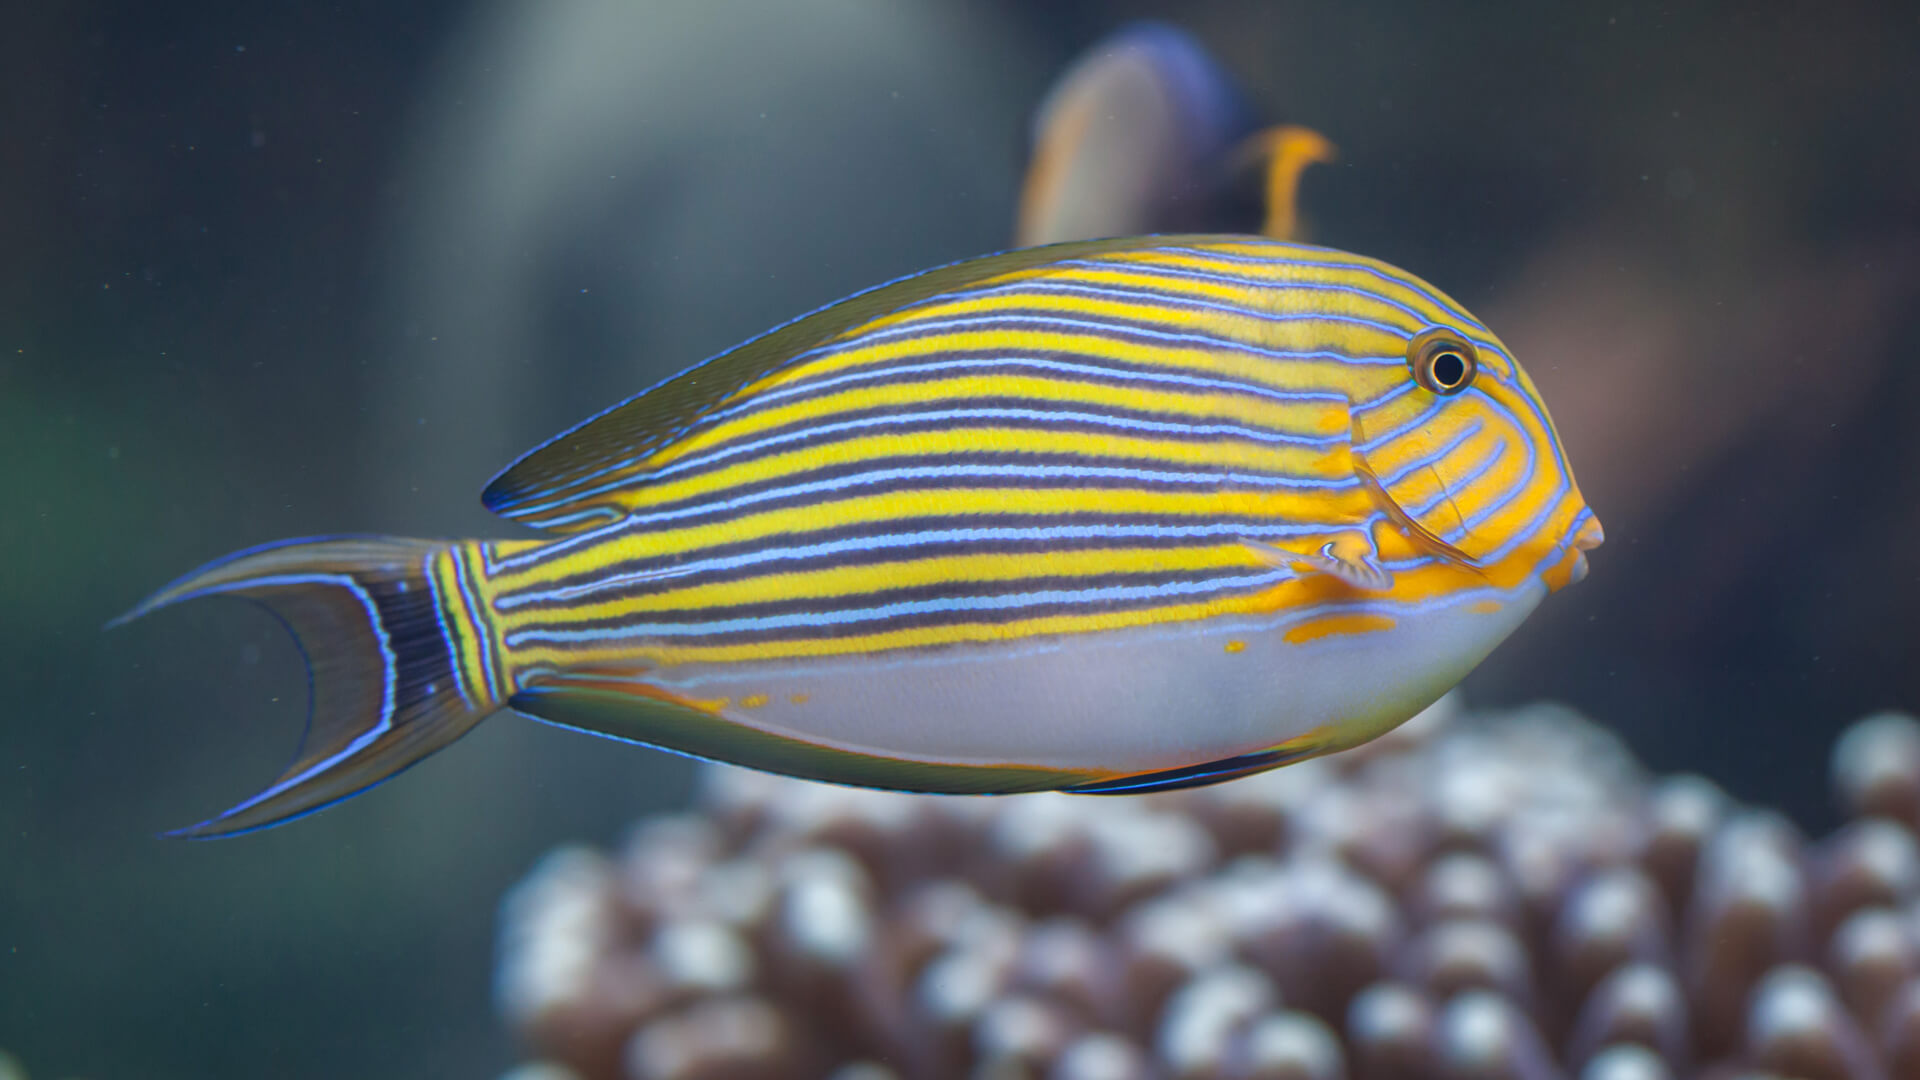 Wild Blue Banded Surgeonfish - Aquatic Treasures of Las Vegas, Nevada